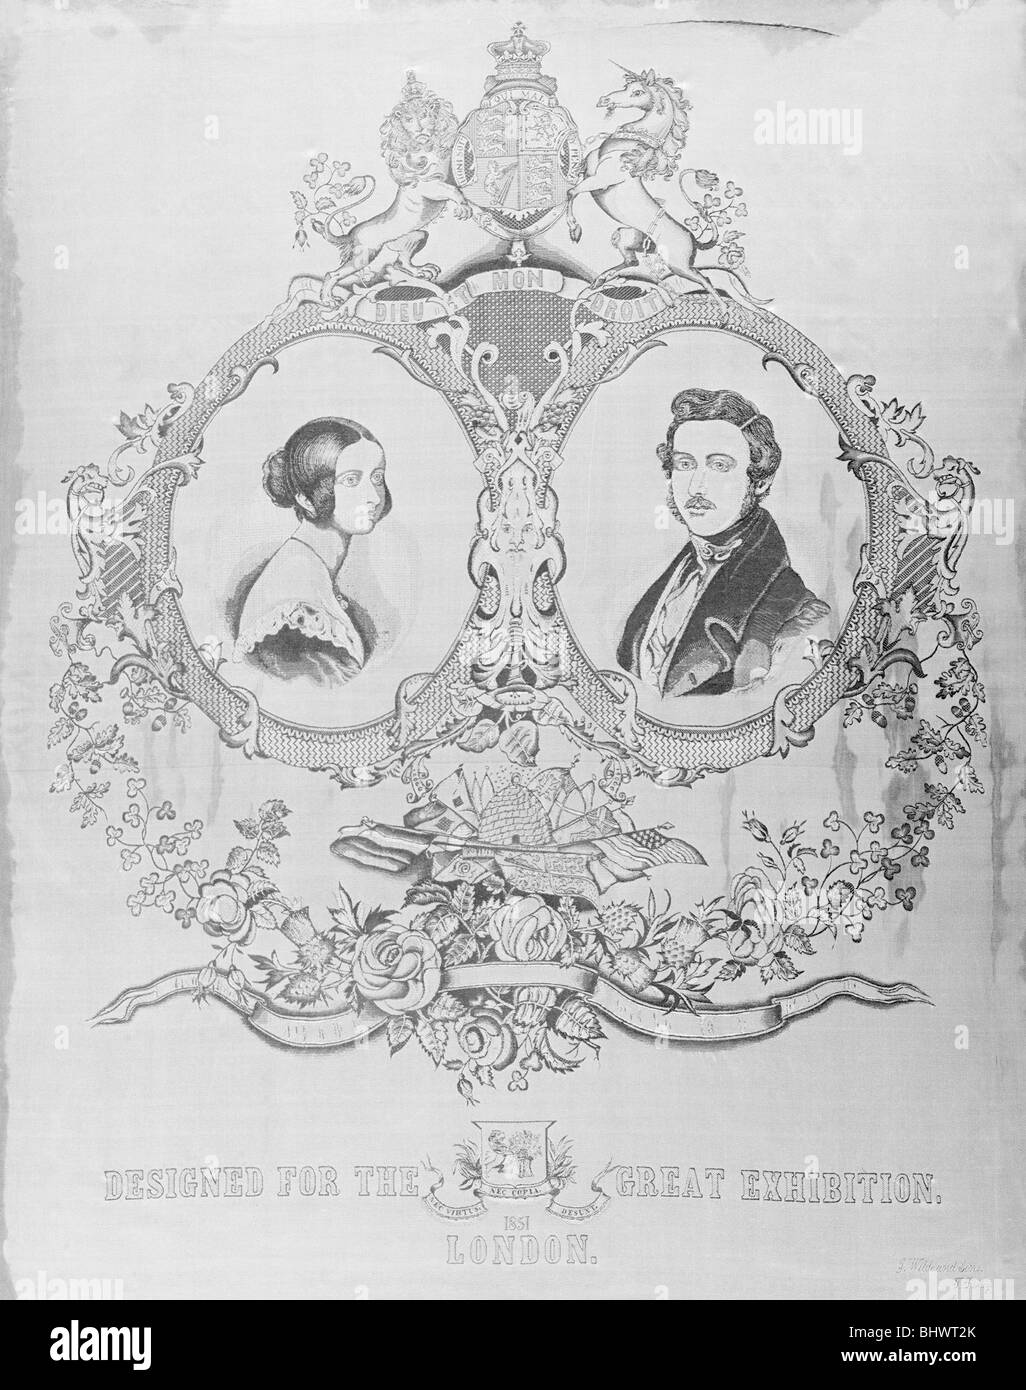 Portrait of Queen Victoria and Prince Albert designed for the Great Exhibition of 1851. - Stock Image